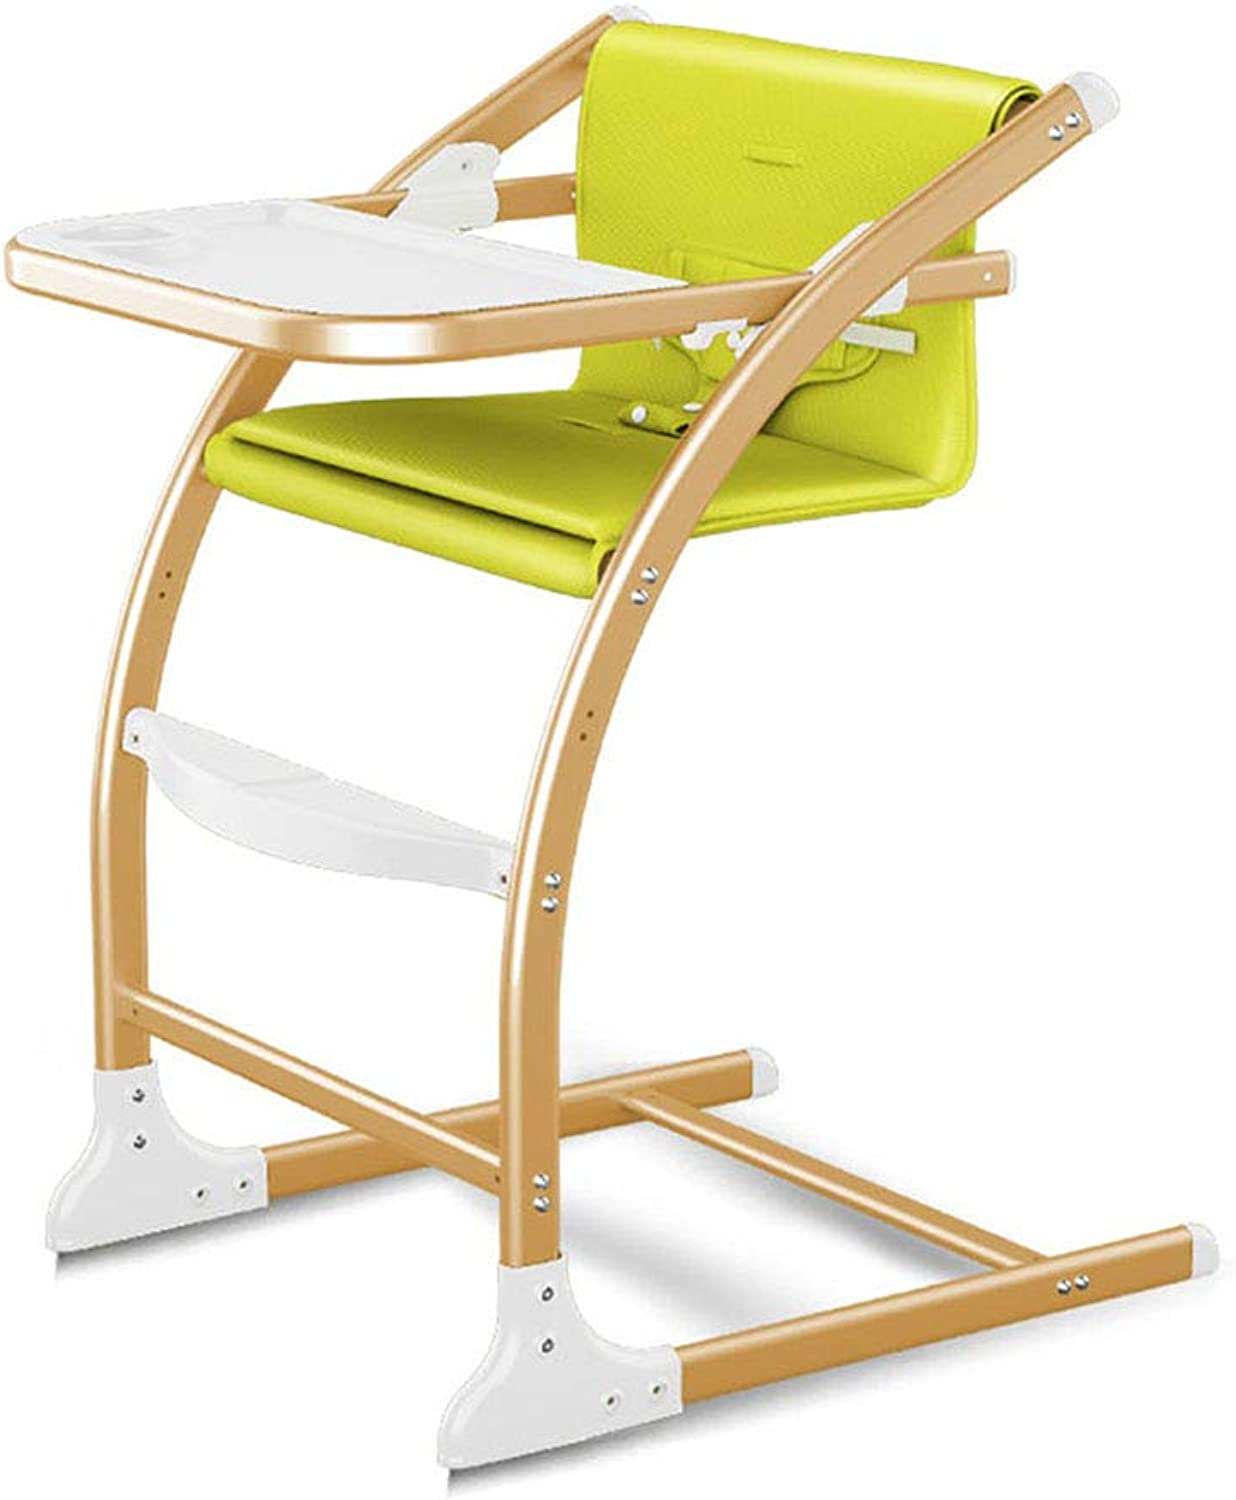 High Chair Baby Dining Chair Multi-Function seat Learning Chair Portable Folding (color   Green, Size   61  64  88cm)